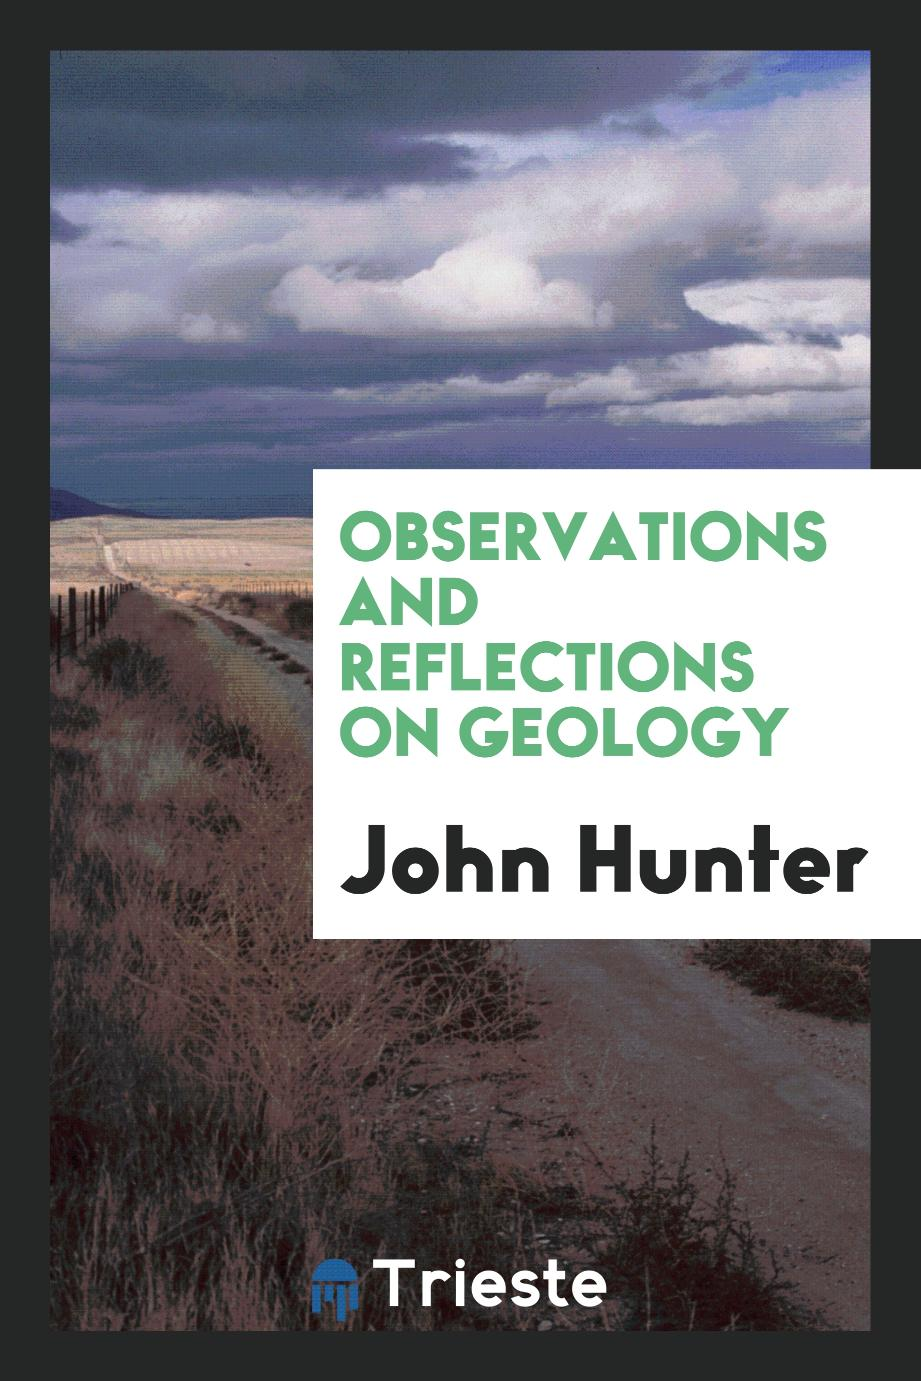 Observations and reflections on geology